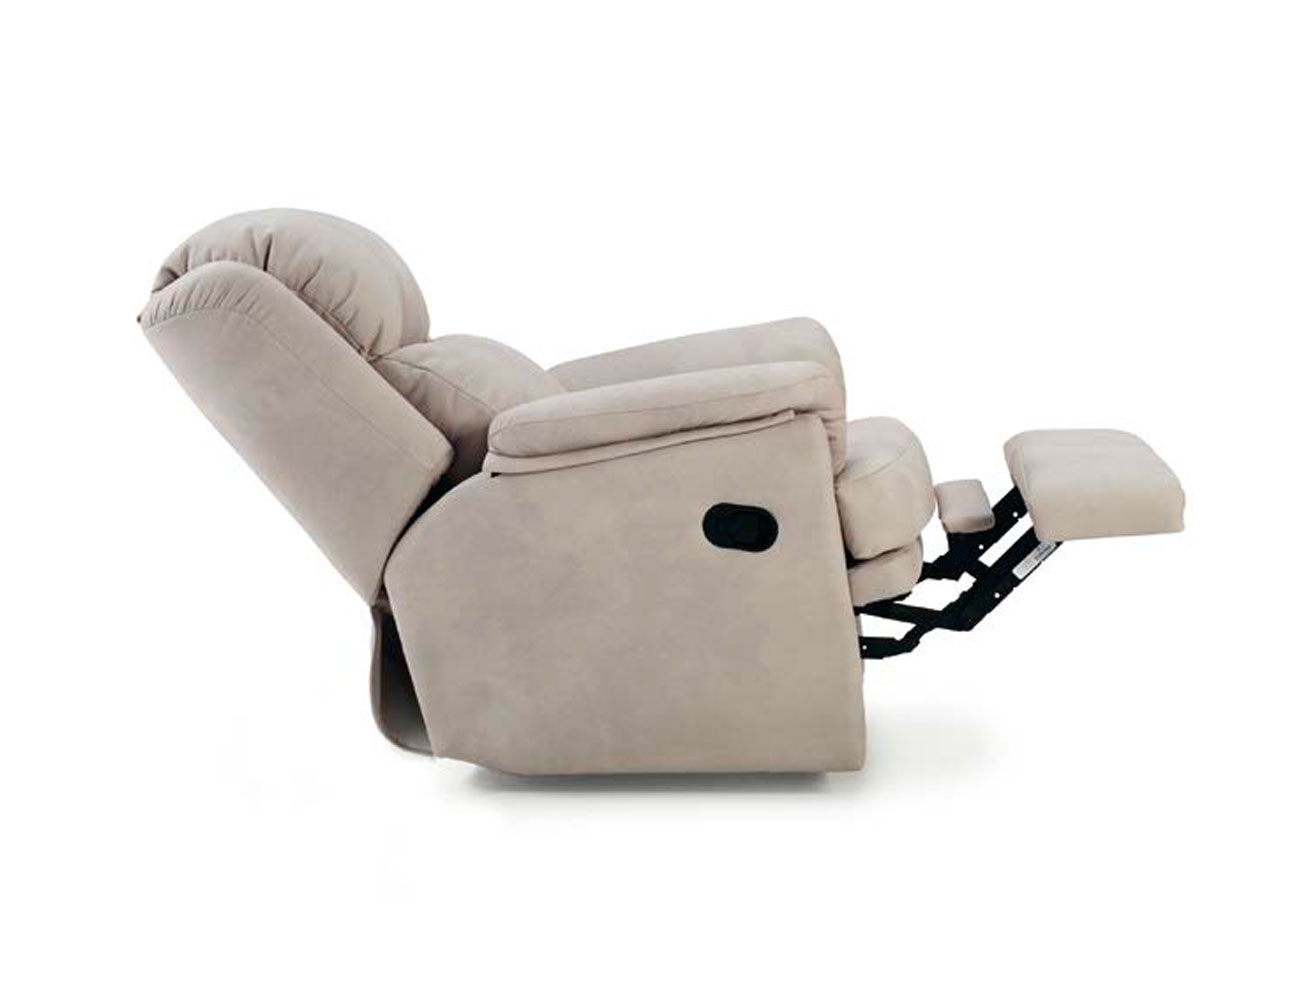 Sillon relax manual palanca esther 111